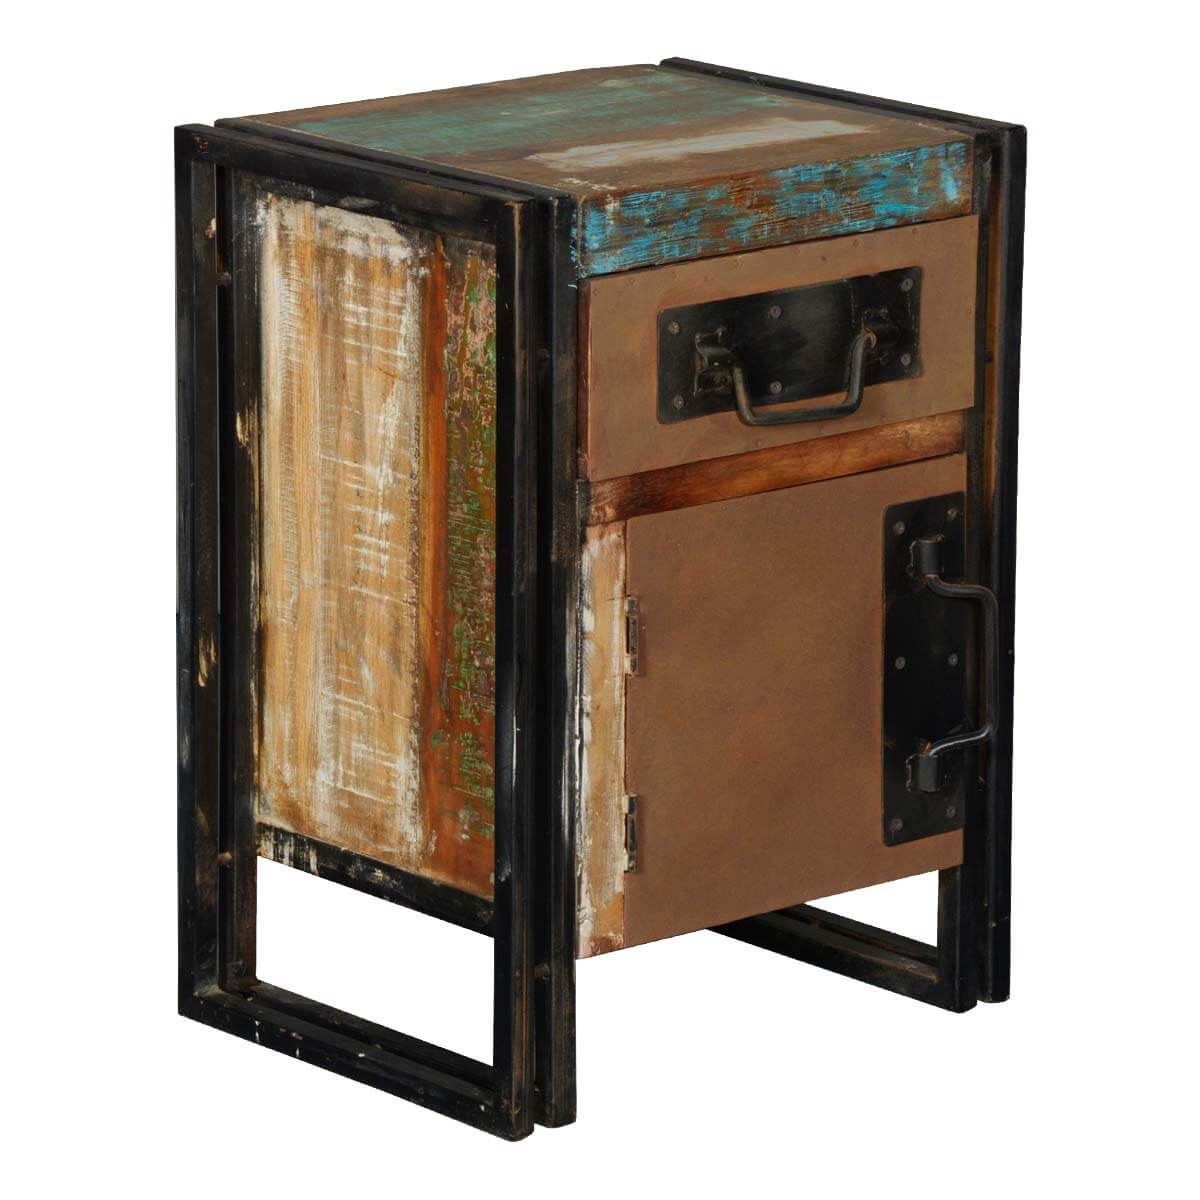 Industrial Night Stand End Table of Iron & Reclaimed Wood Furniture